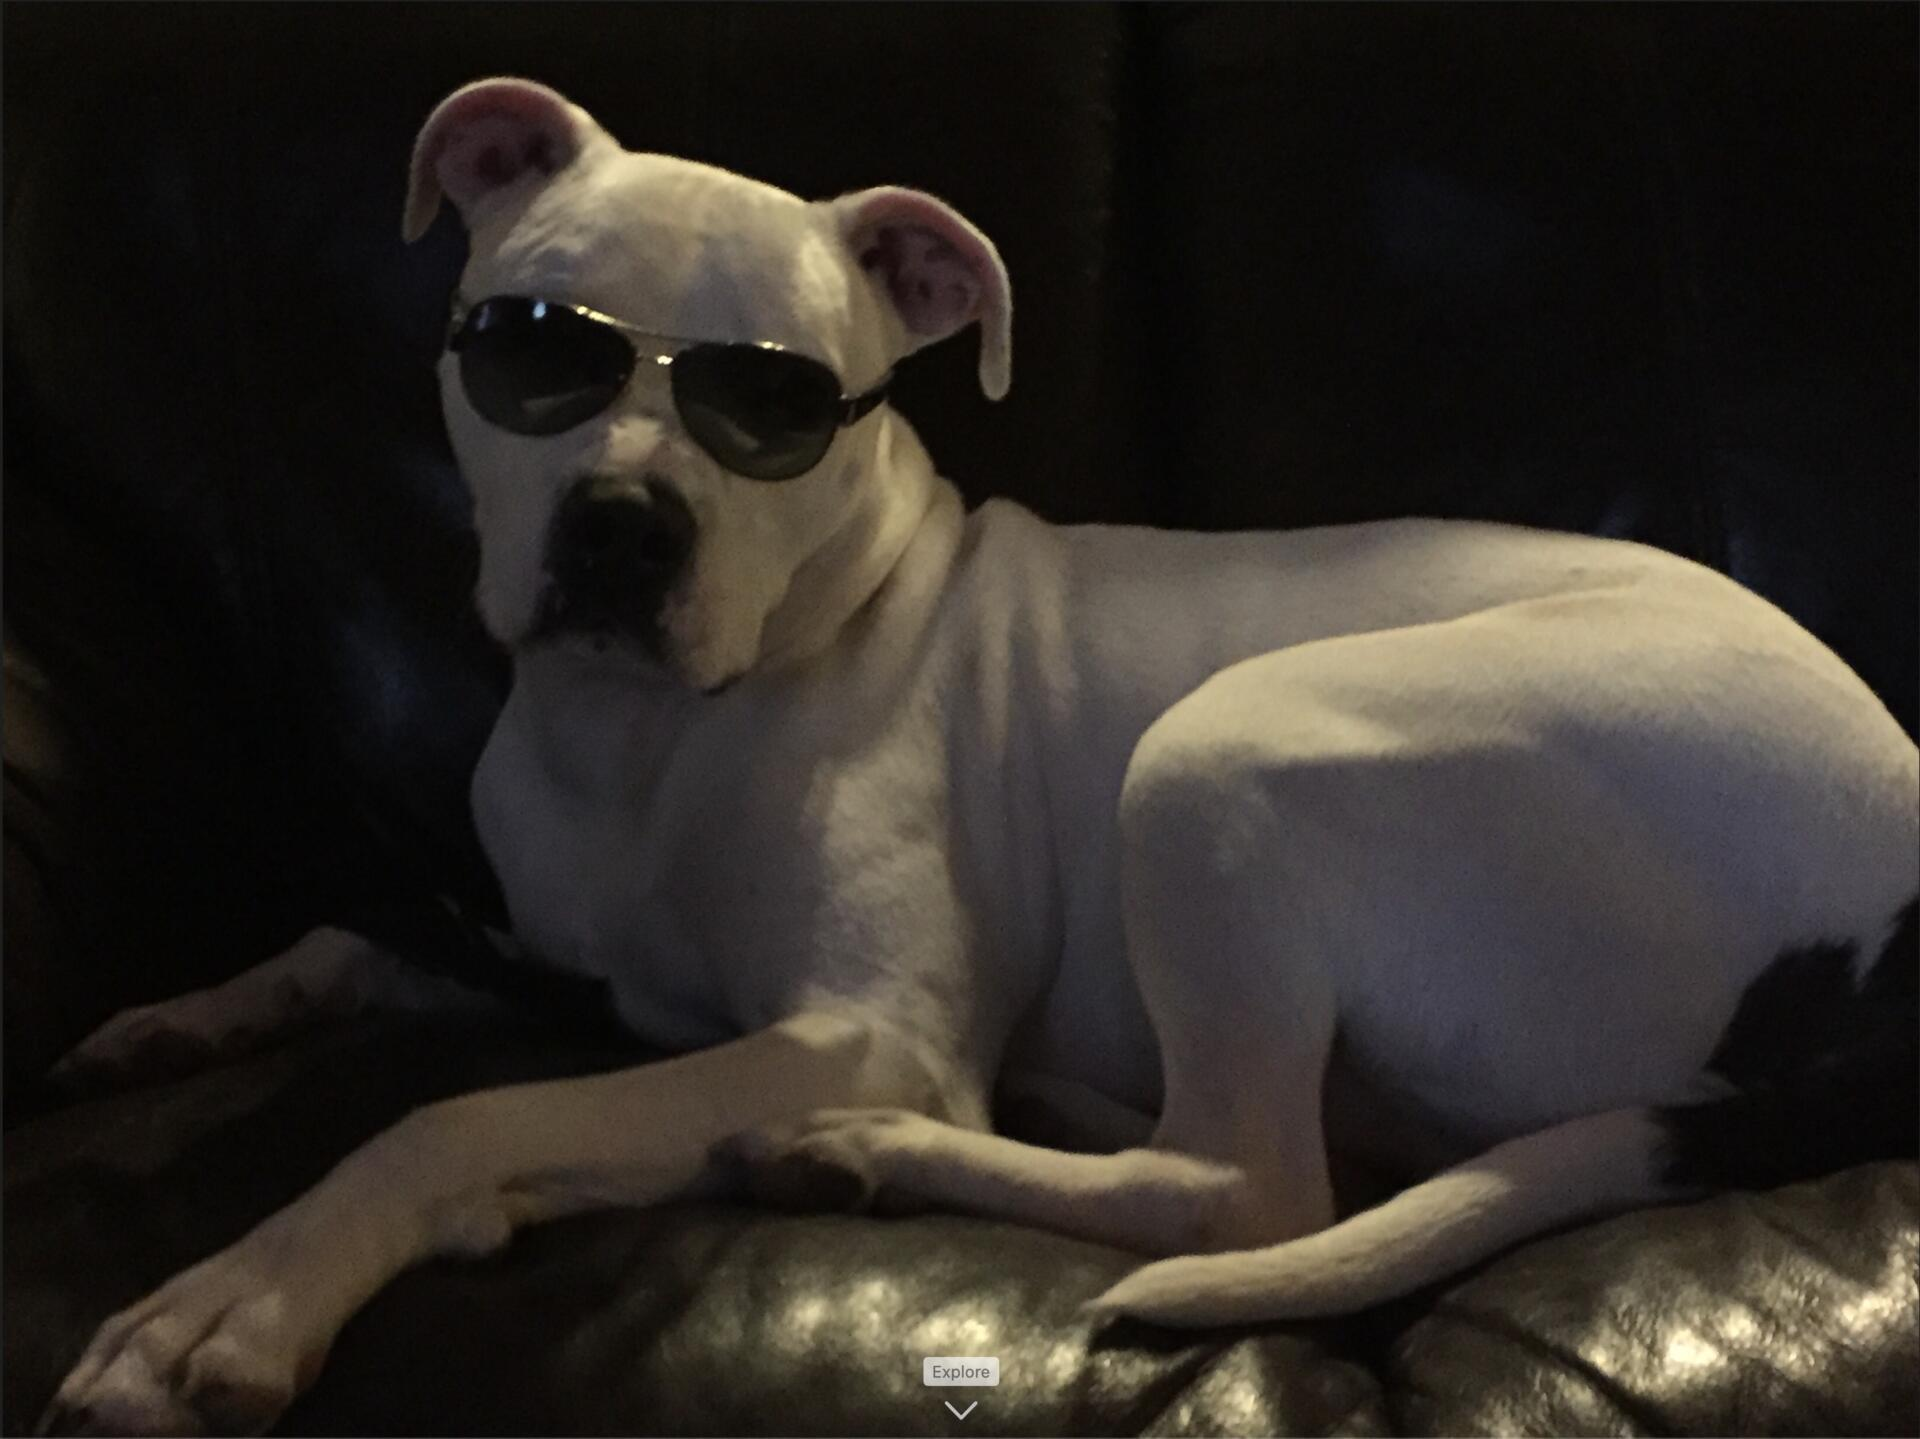 Ted looking cool